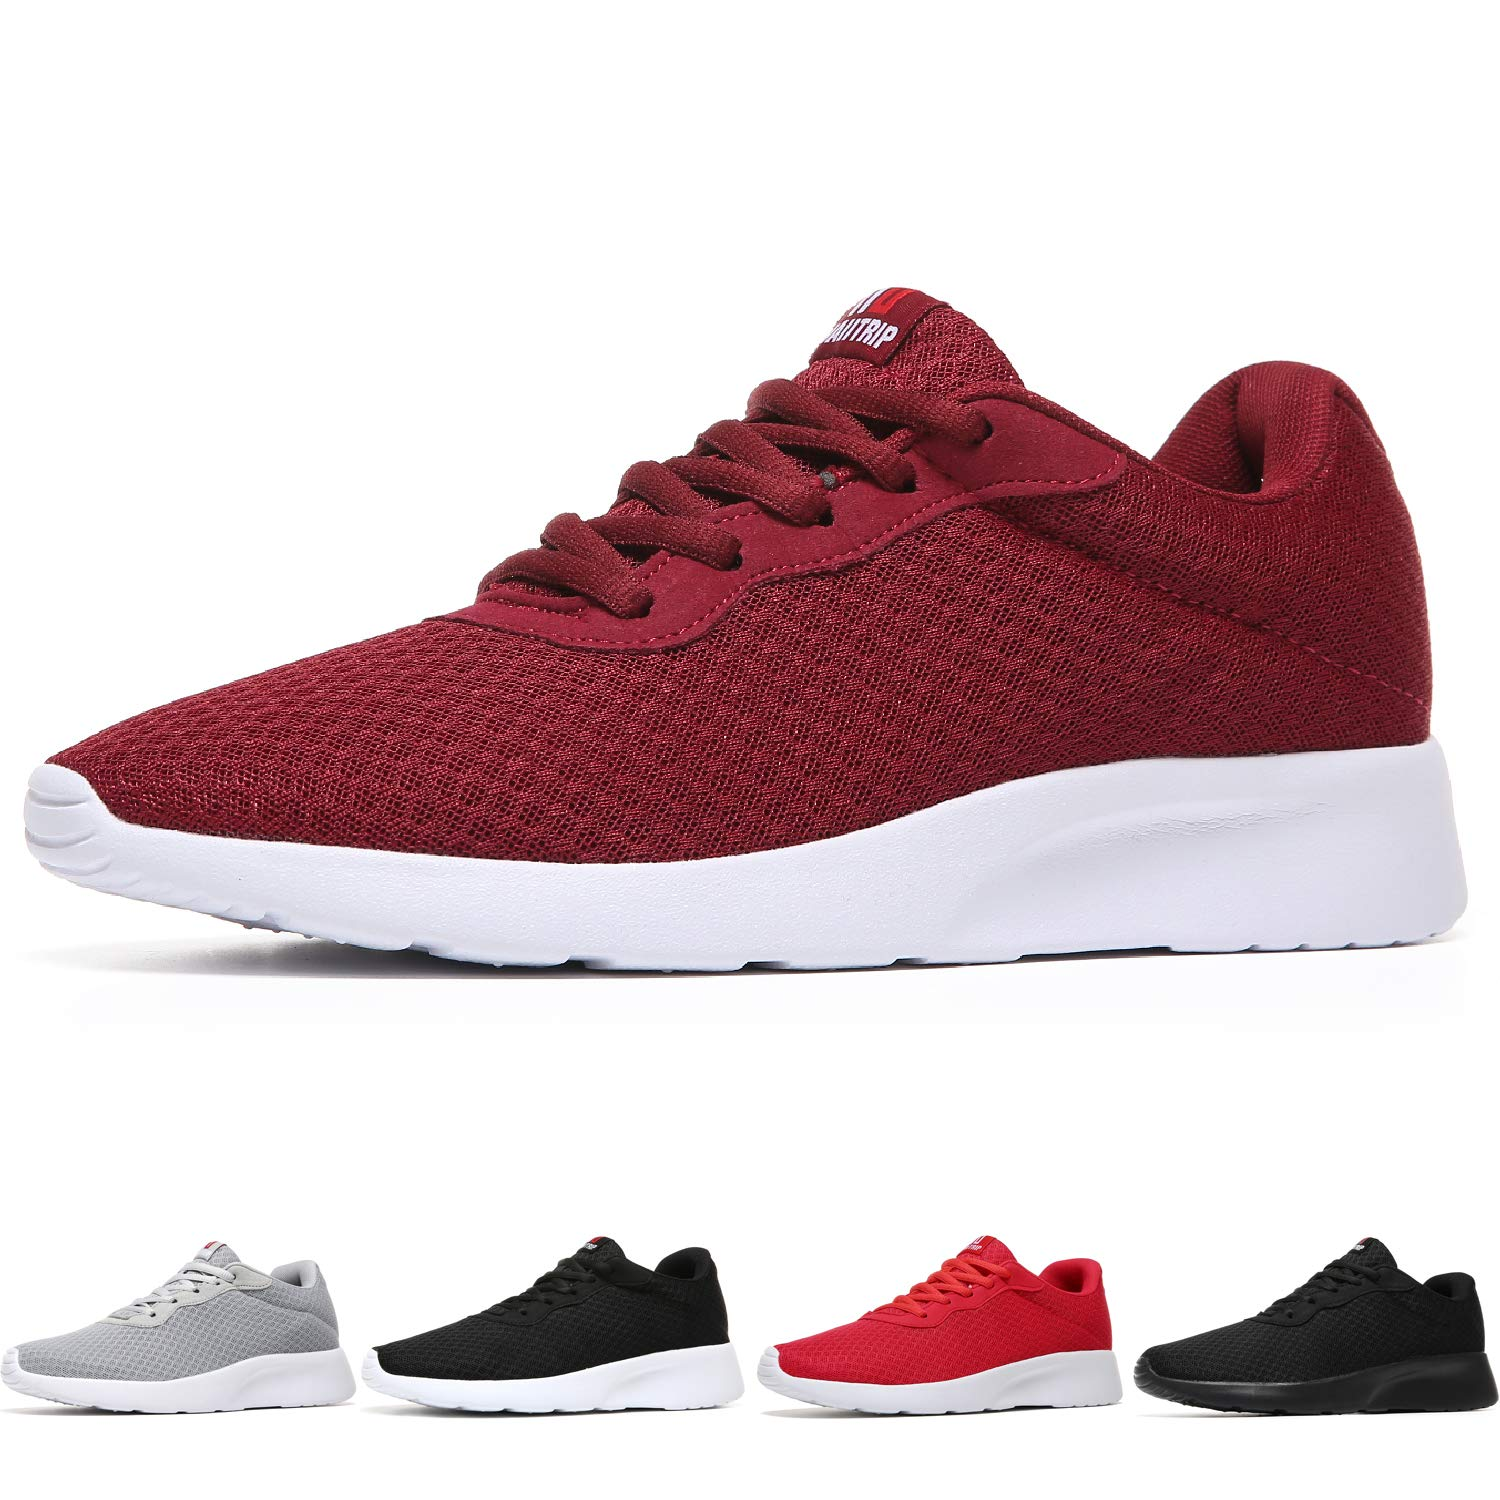 MAIITRIP Men's Running Shoes Sport Athletic Sneakers,Claret Red,Size 7